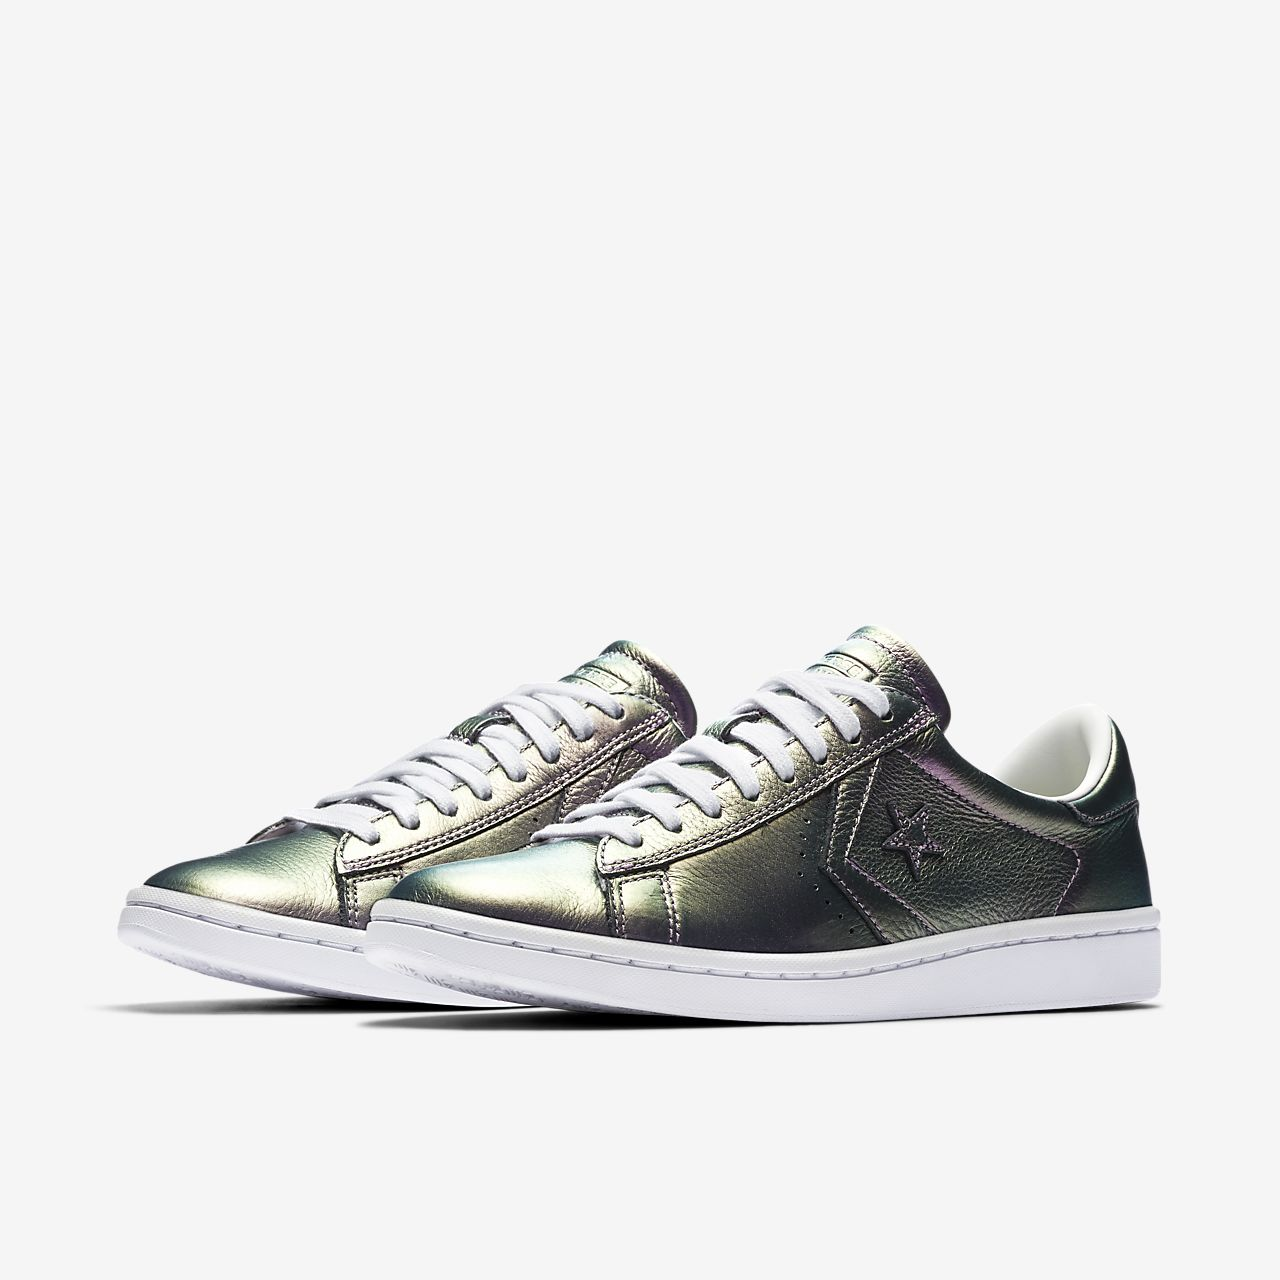 b791a048348 converse pro leather lp iridescent leather low top